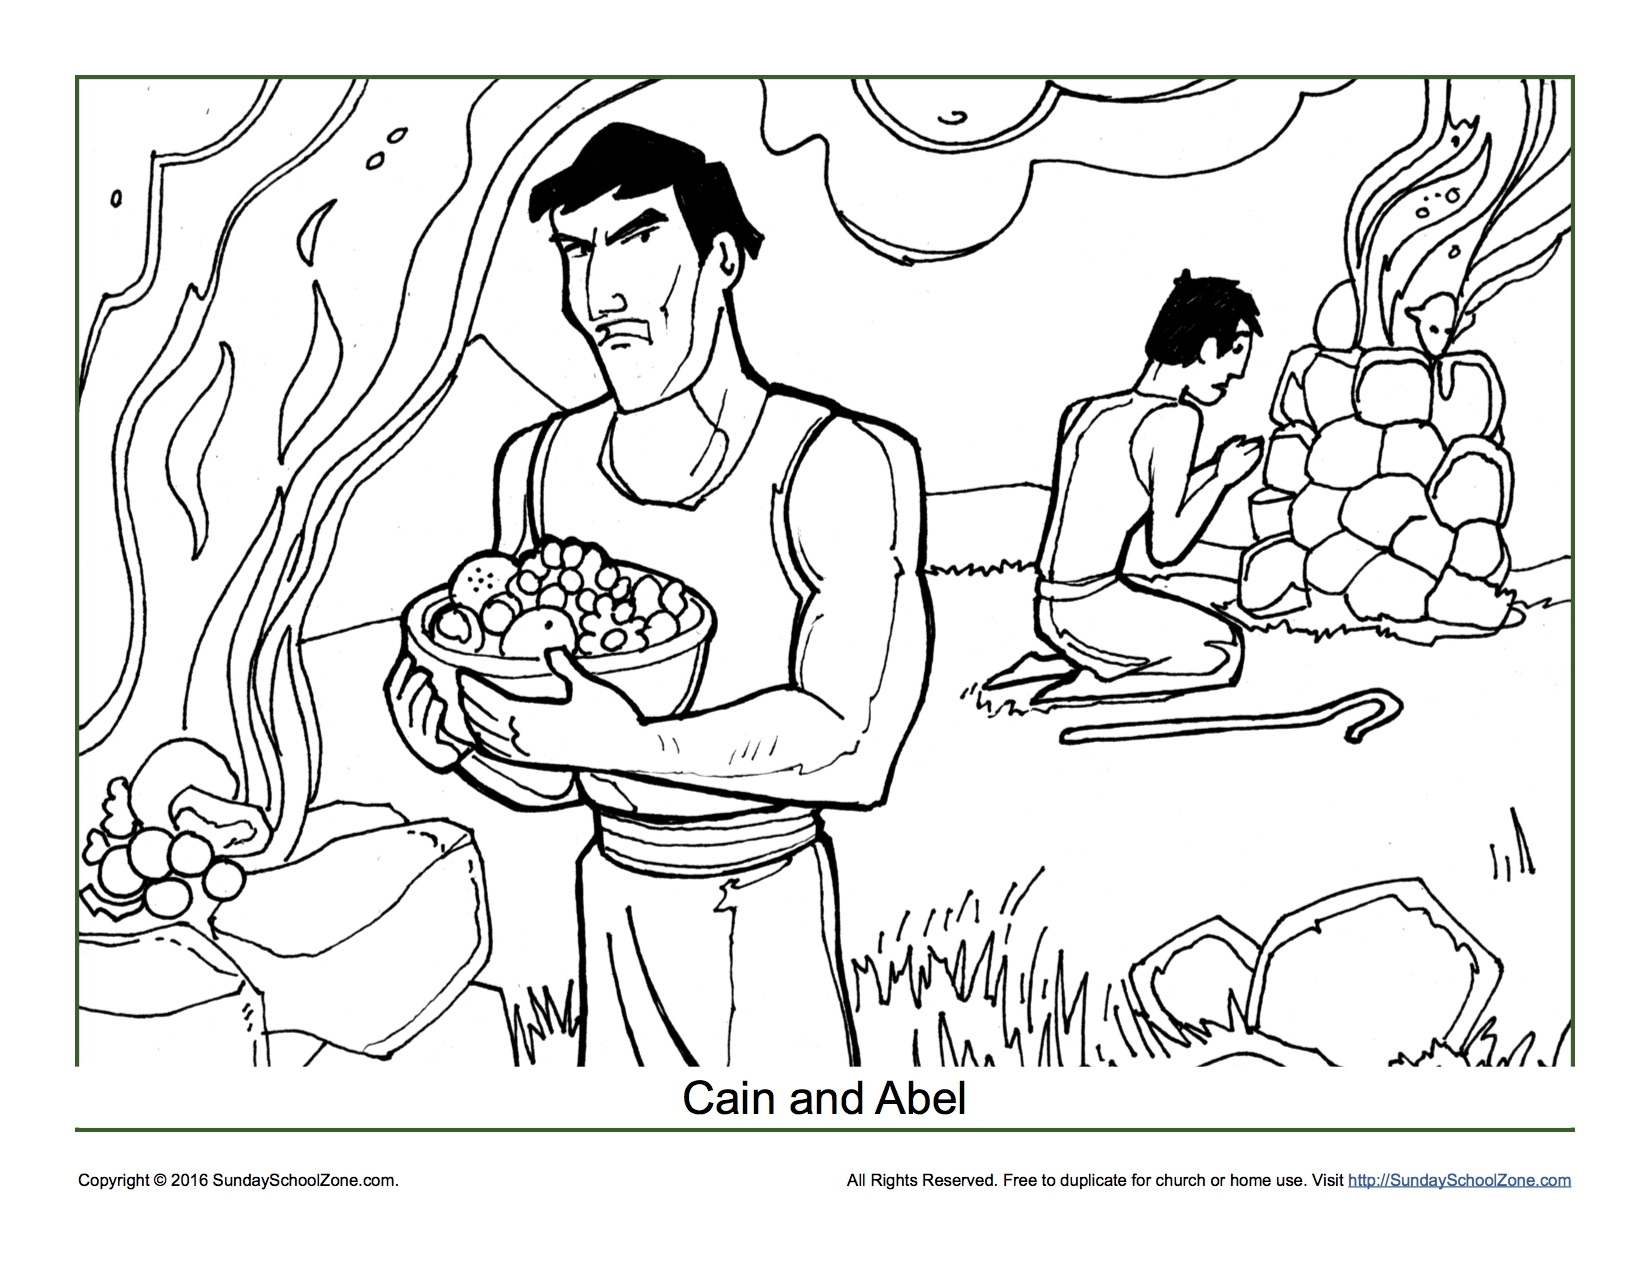 cain and abel coloring page - cain and abel coloring worksheet sketch templates